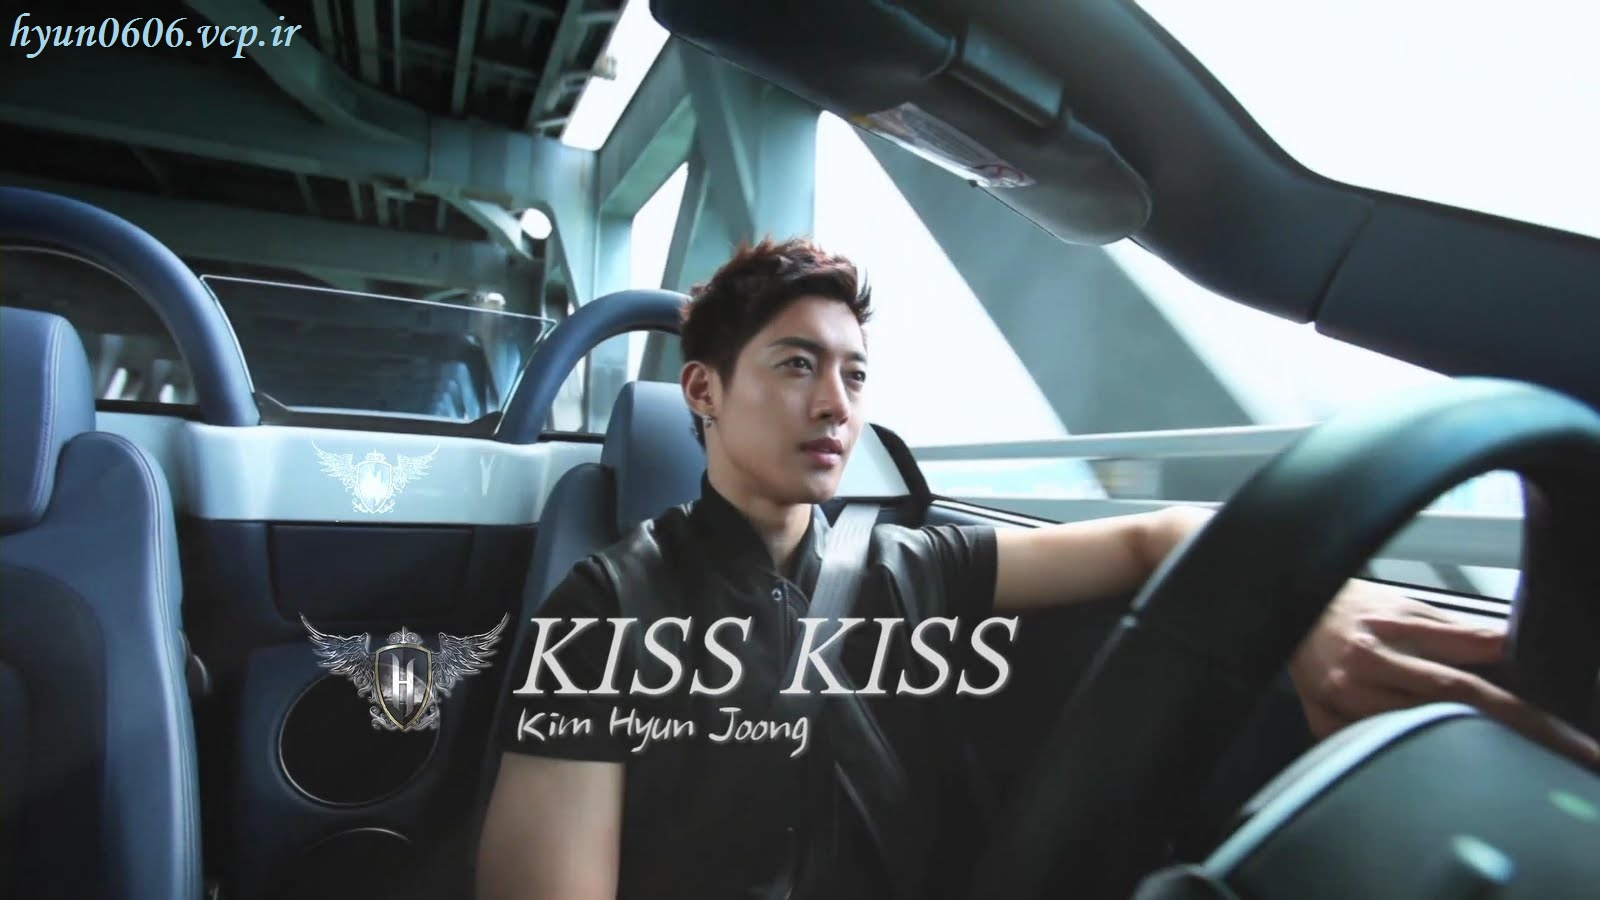 Music Video_Kim hyun joong - Kiss Kiss